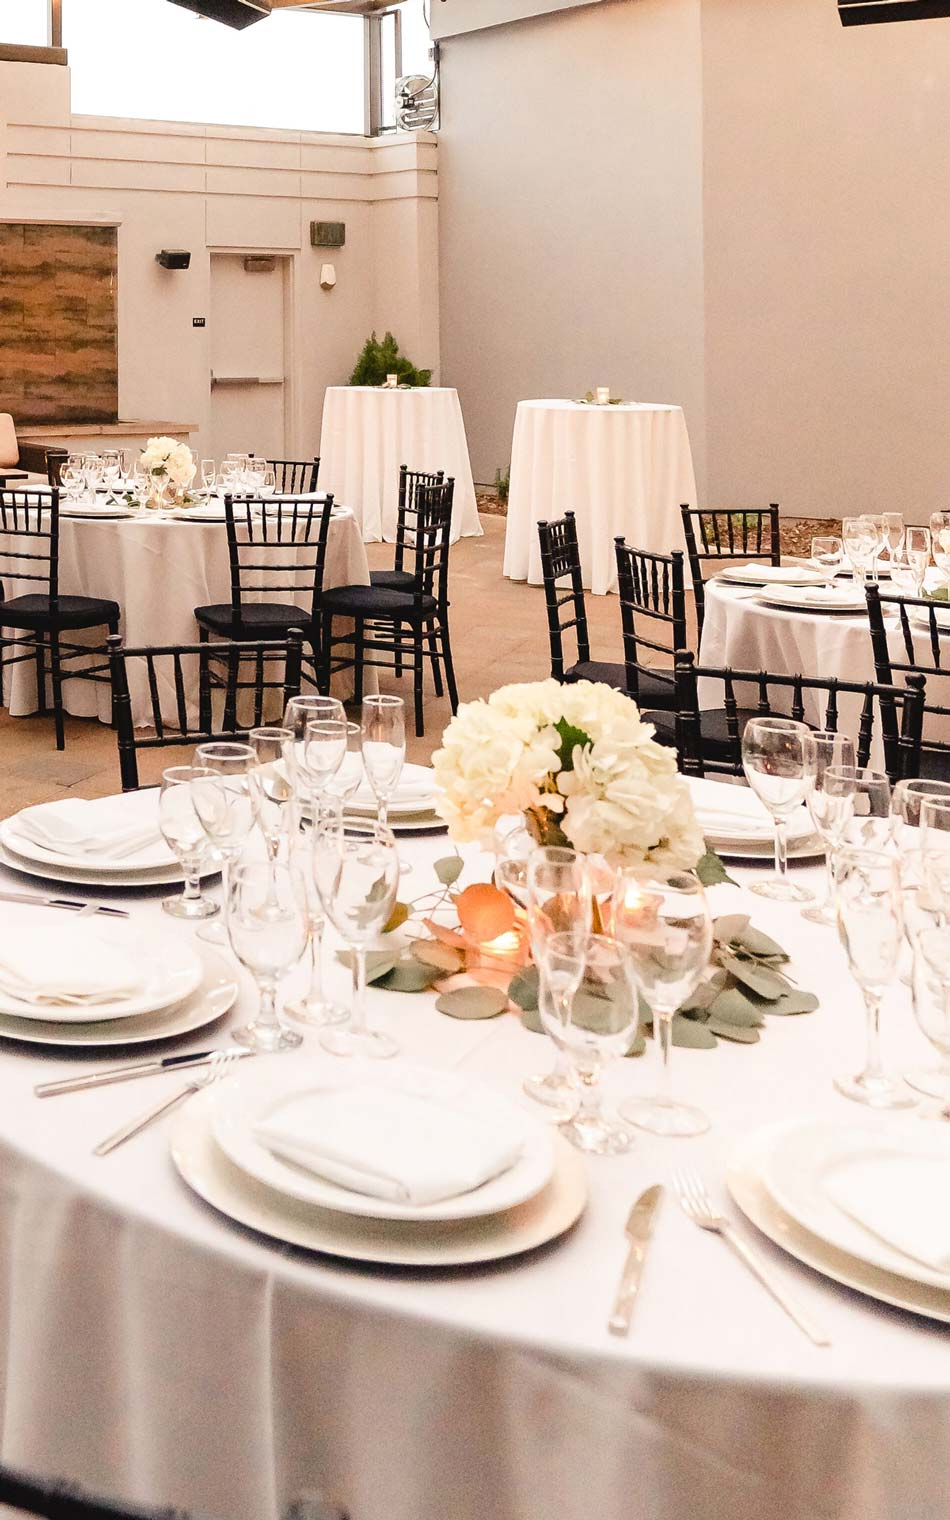 The atrium center table with plates